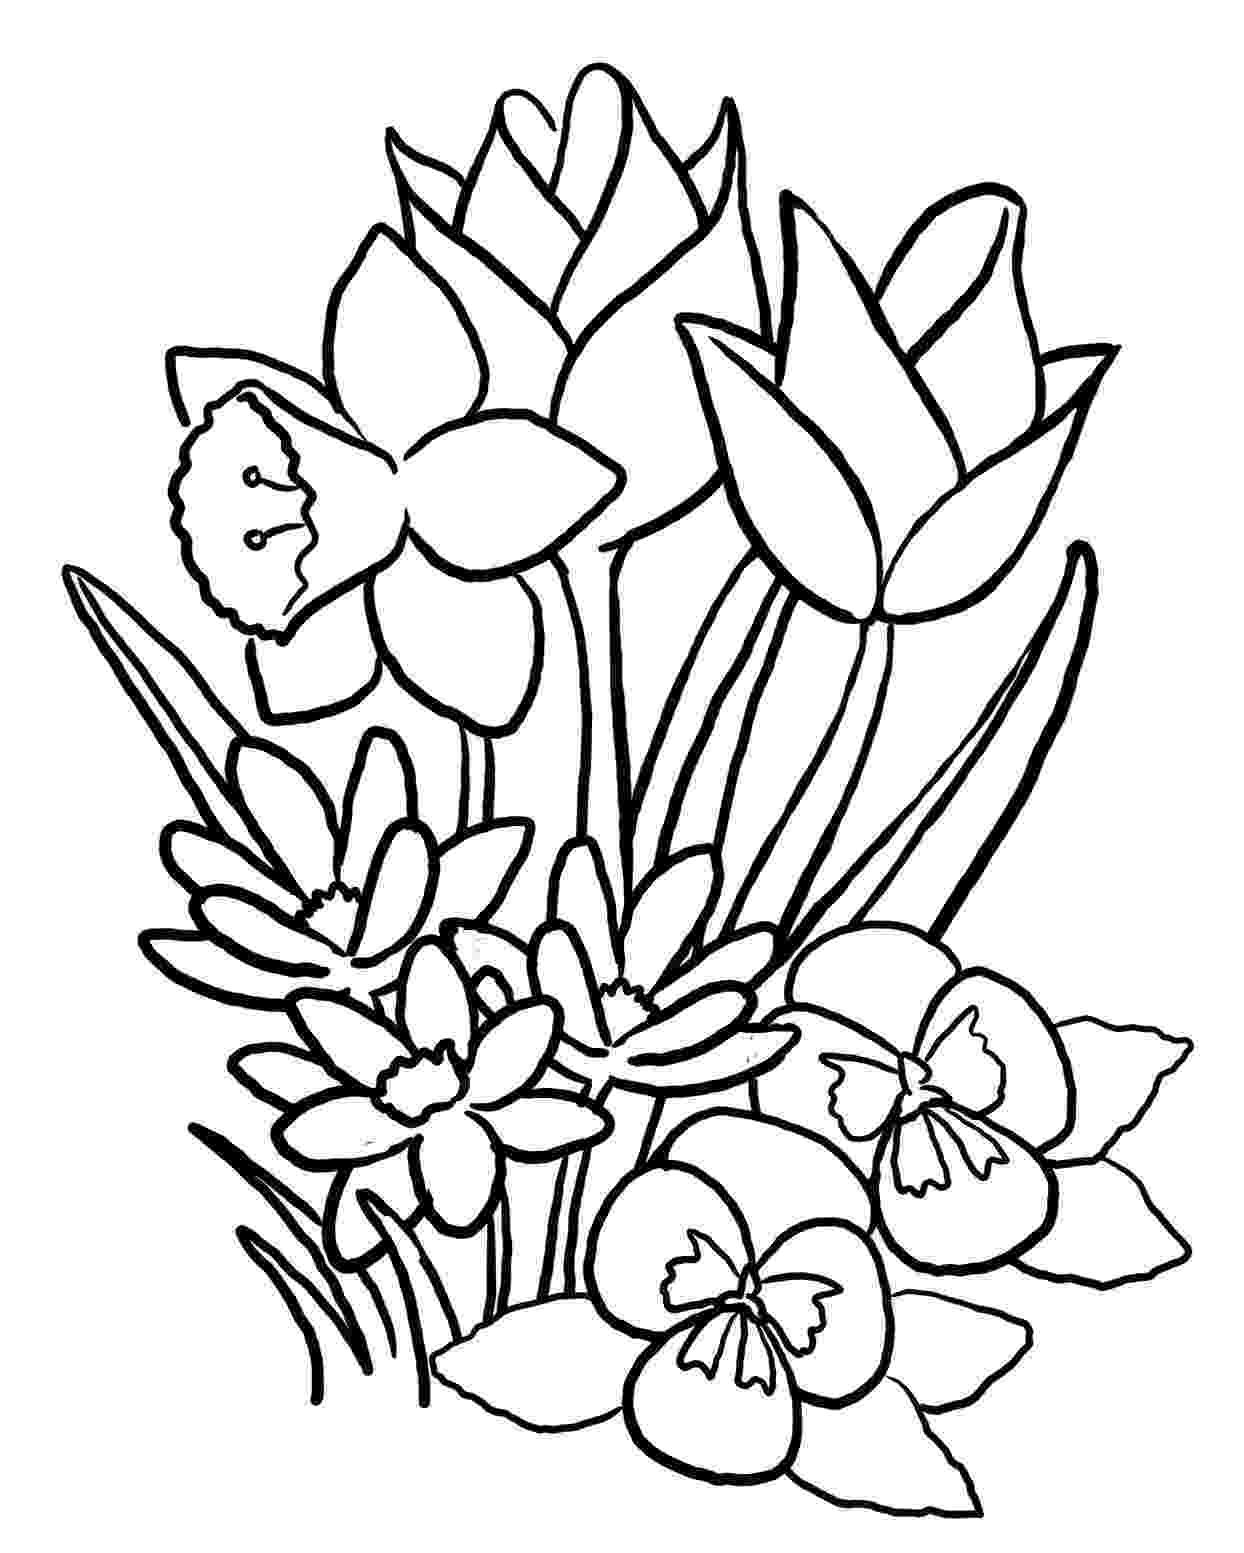 colouring pictures of plants free printable flower coloring pages for kids cool2bkids plants pictures colouring of